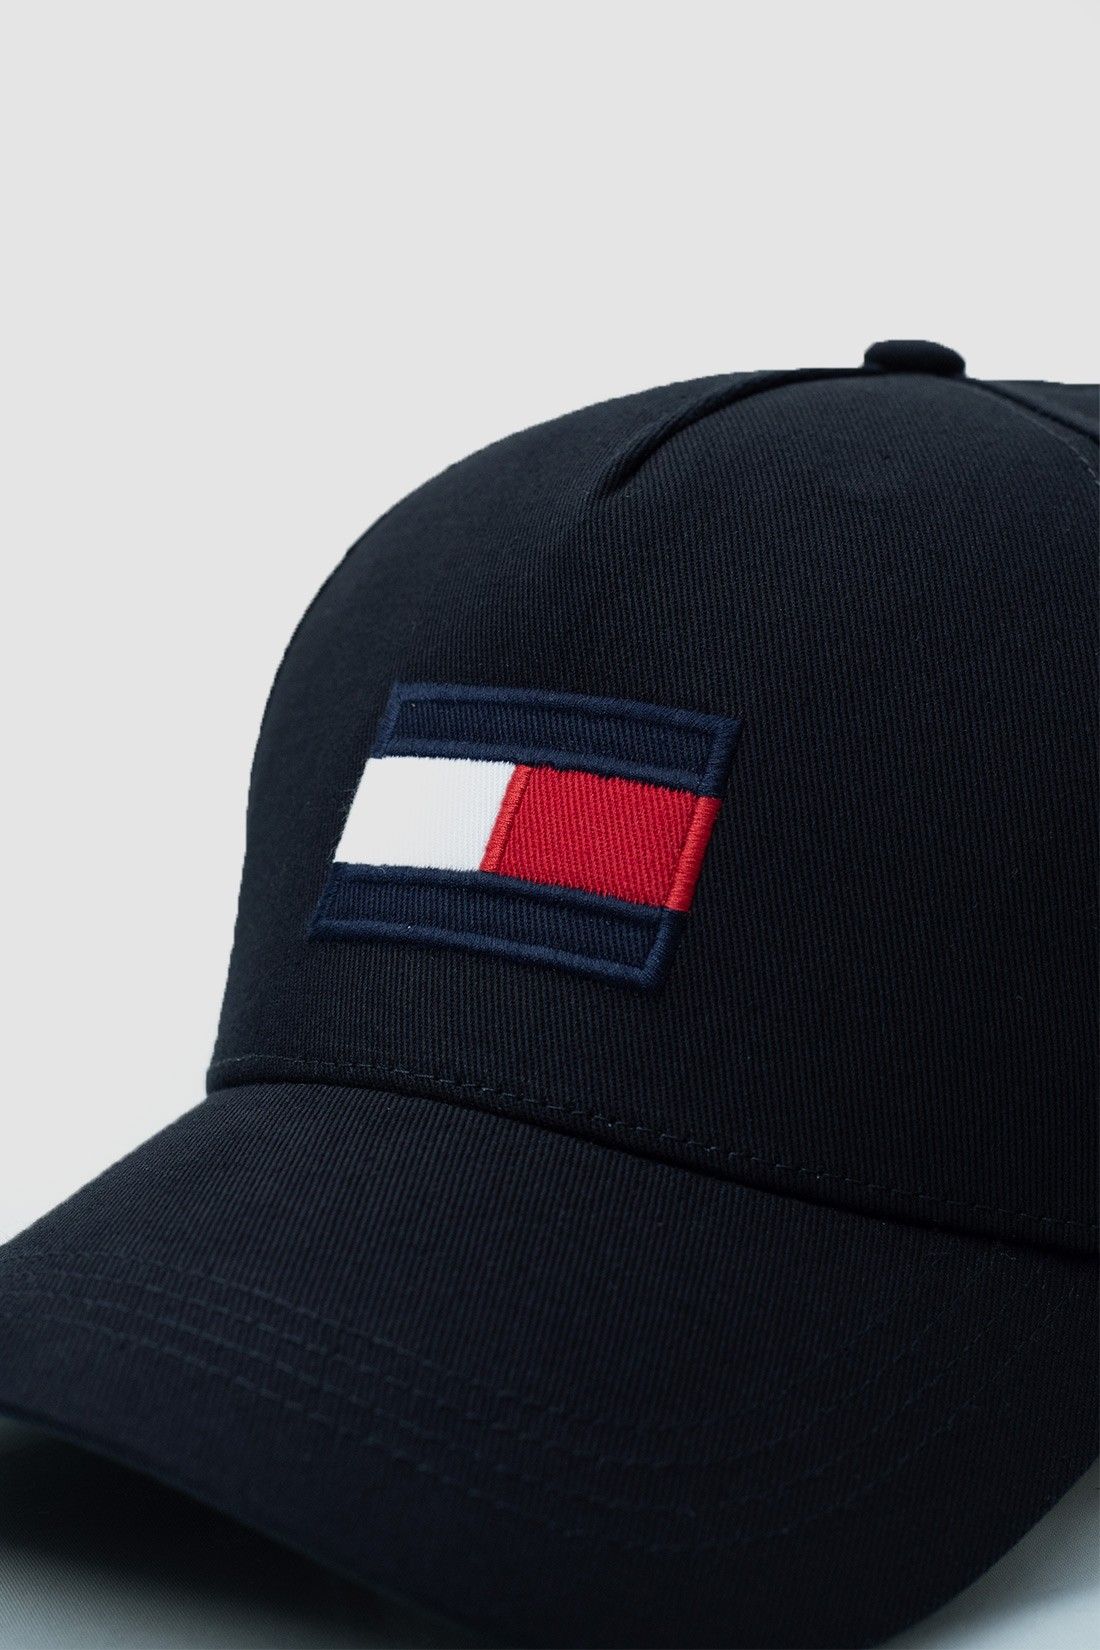 Bone Tommy Hilfiger Big Flag